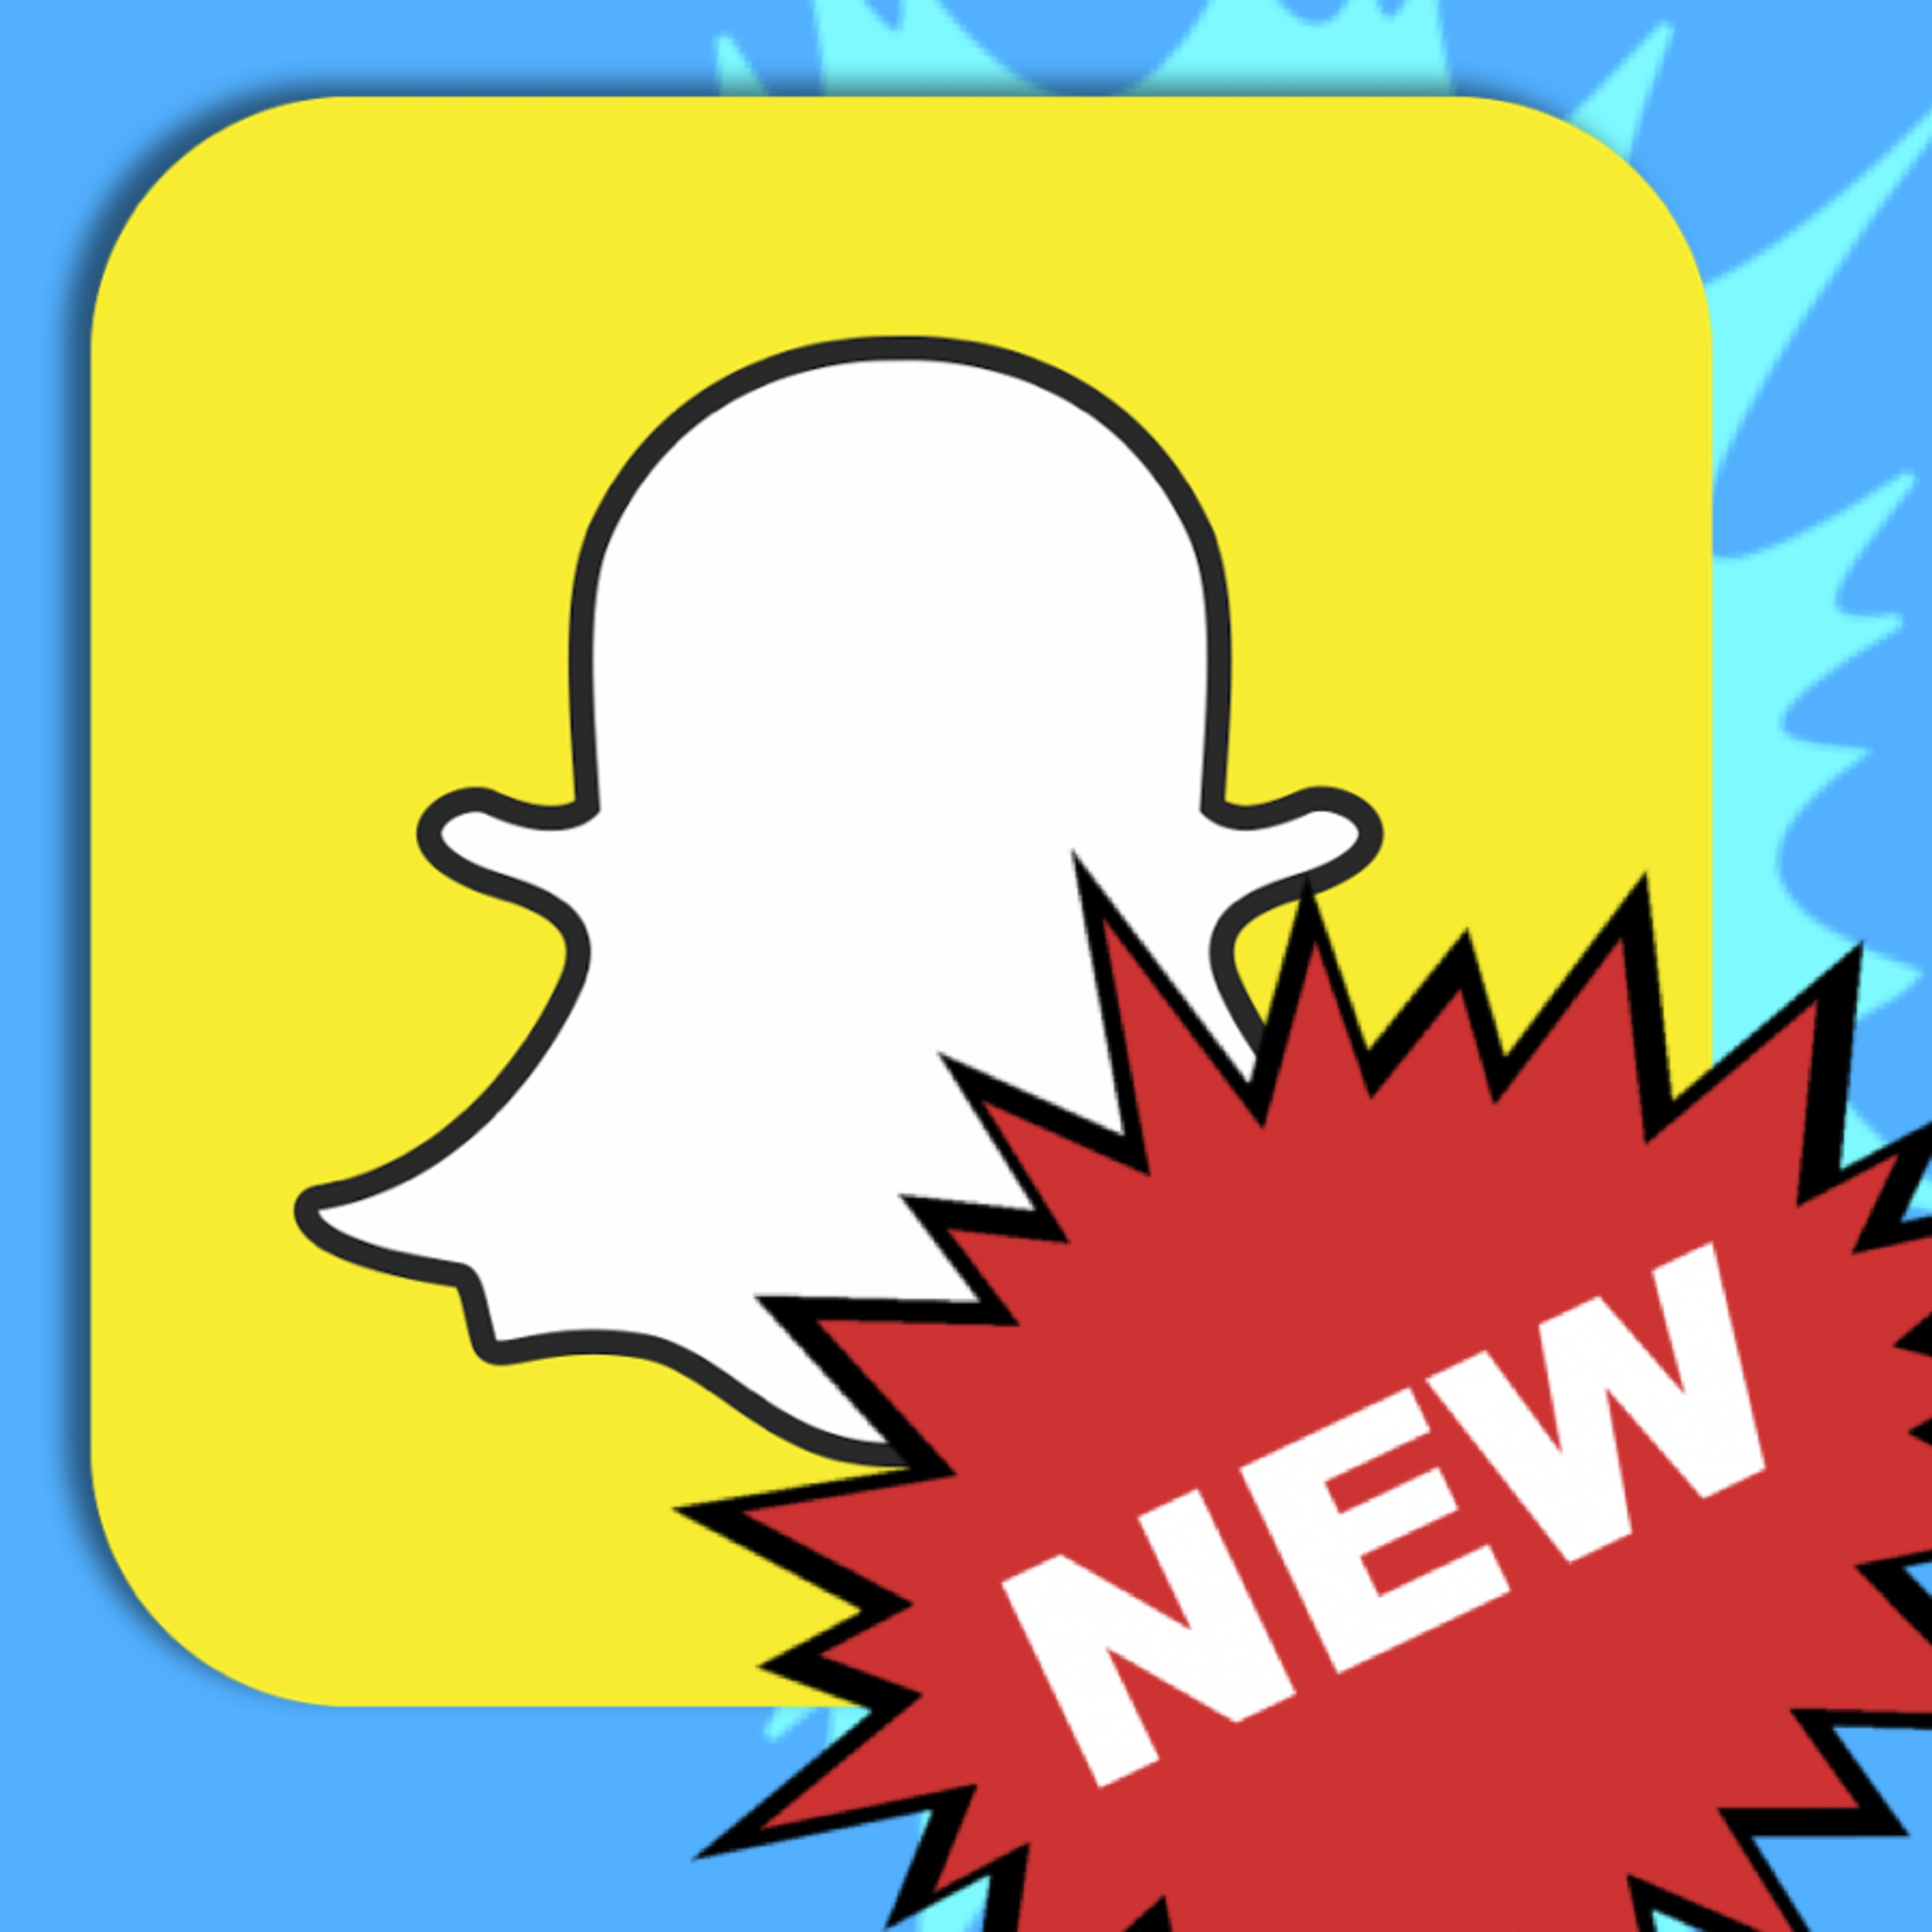 NEW Snapchat Update😱 April 17, 2018 by Sketch w/ Sal • A podcast on